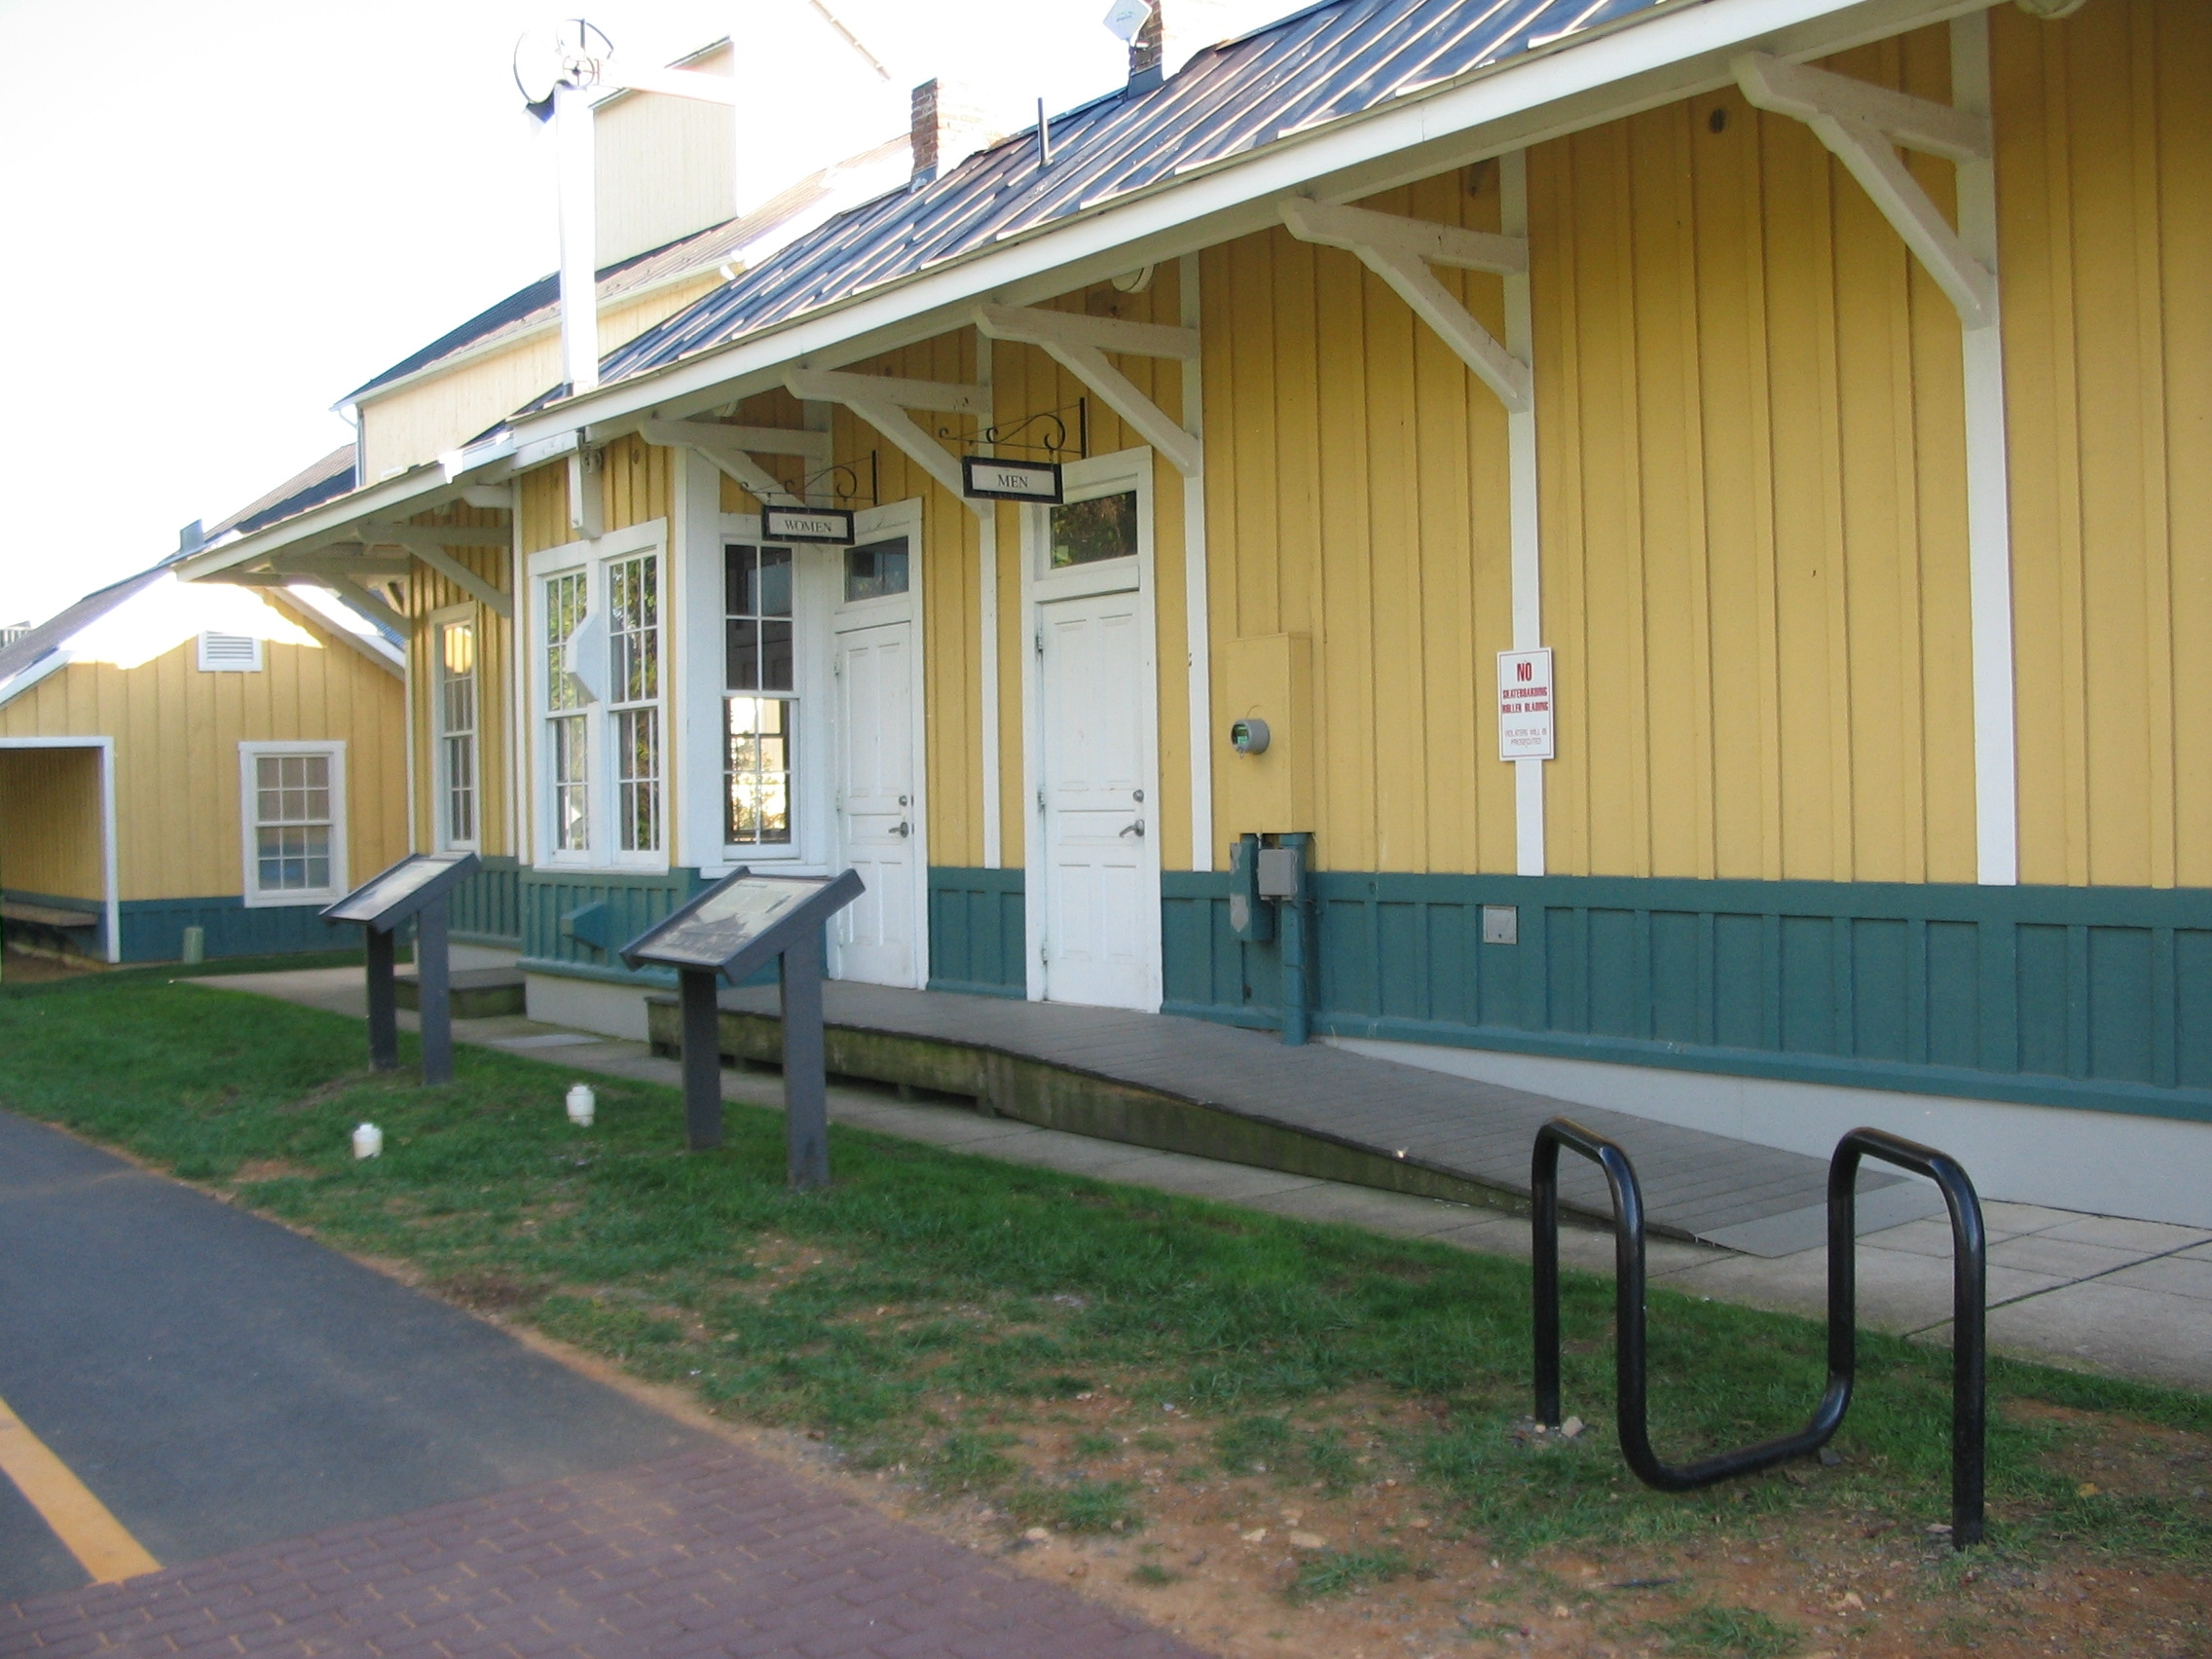 Markers in front of the Train Station